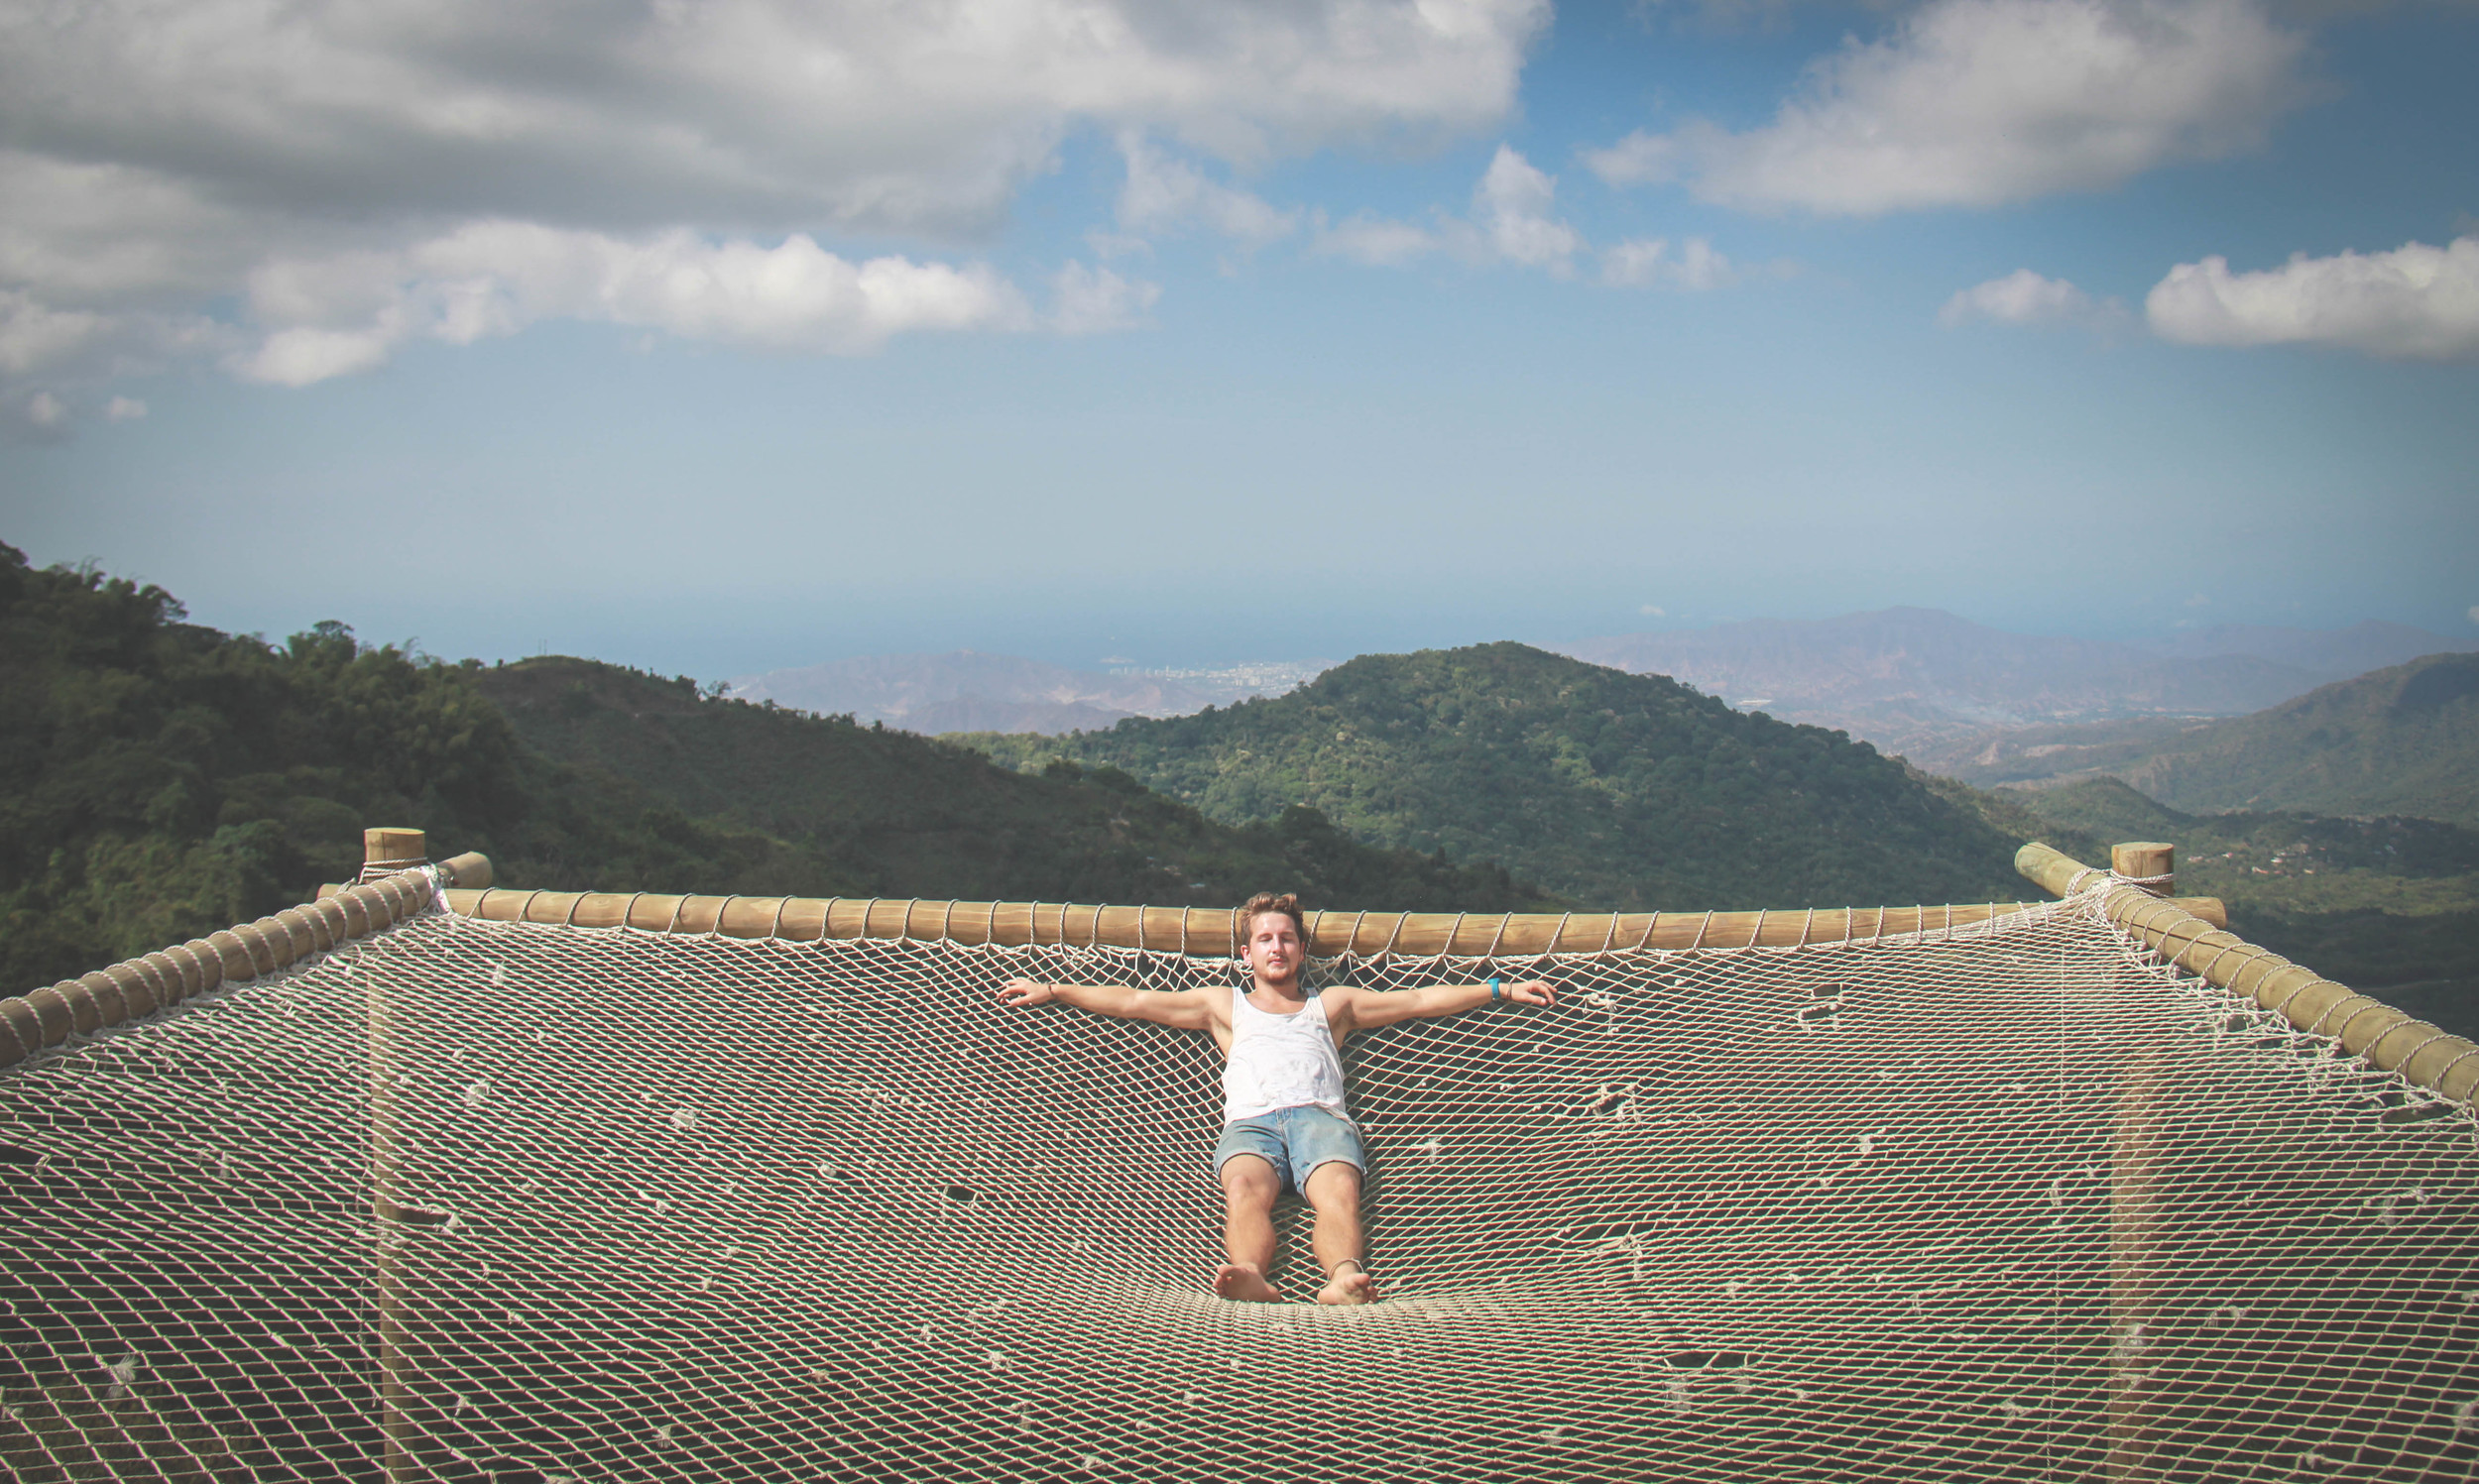 Things to do in Minca, Colombia - The giant hammock at Casa Elemento